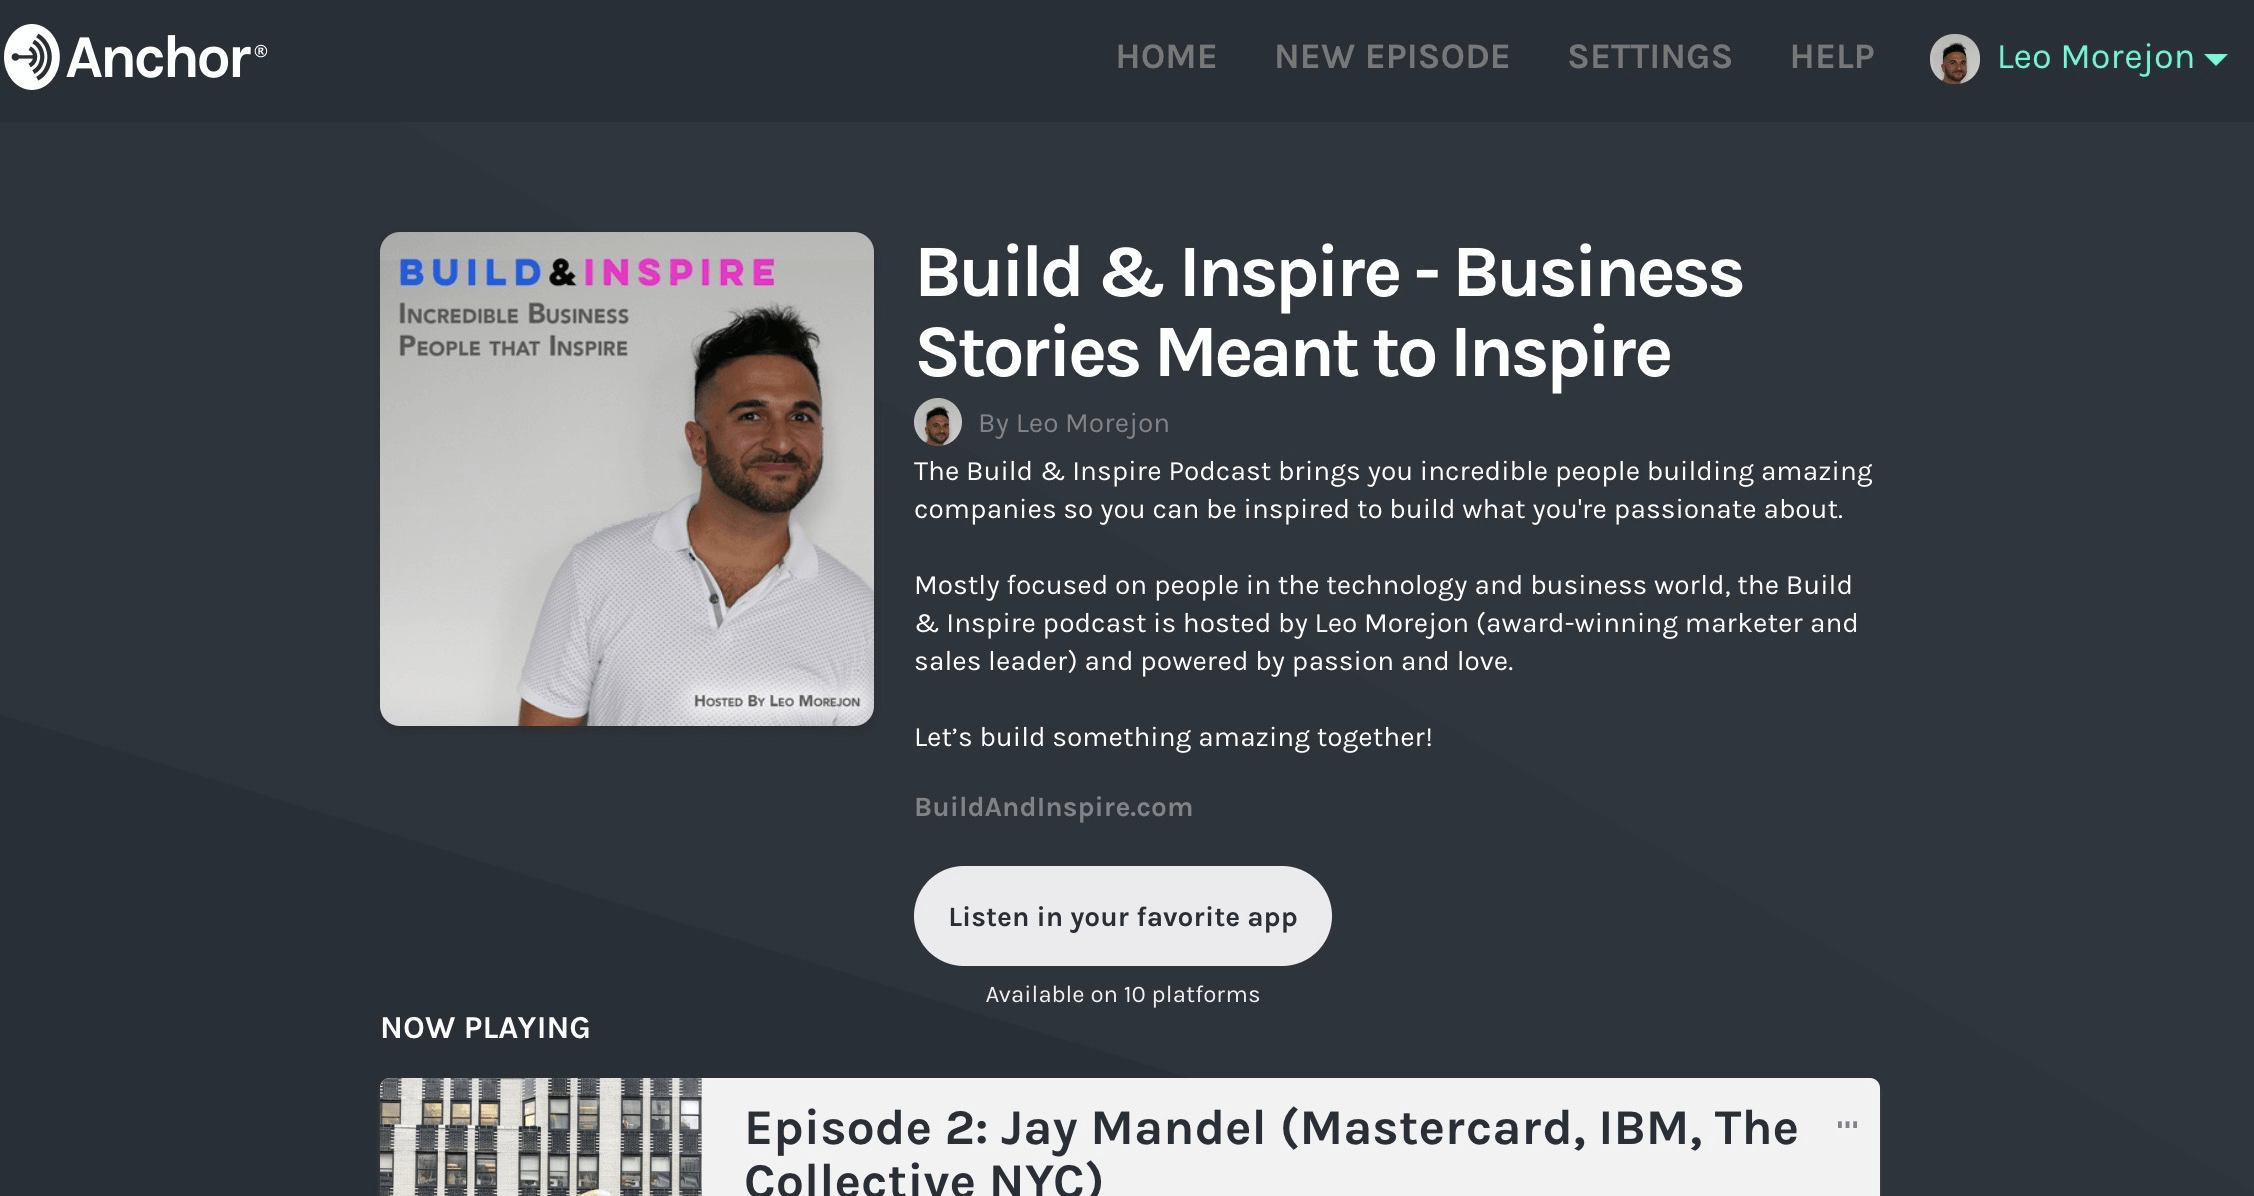 Build & Inspire Podcast - Business Stories Meant to Inspire